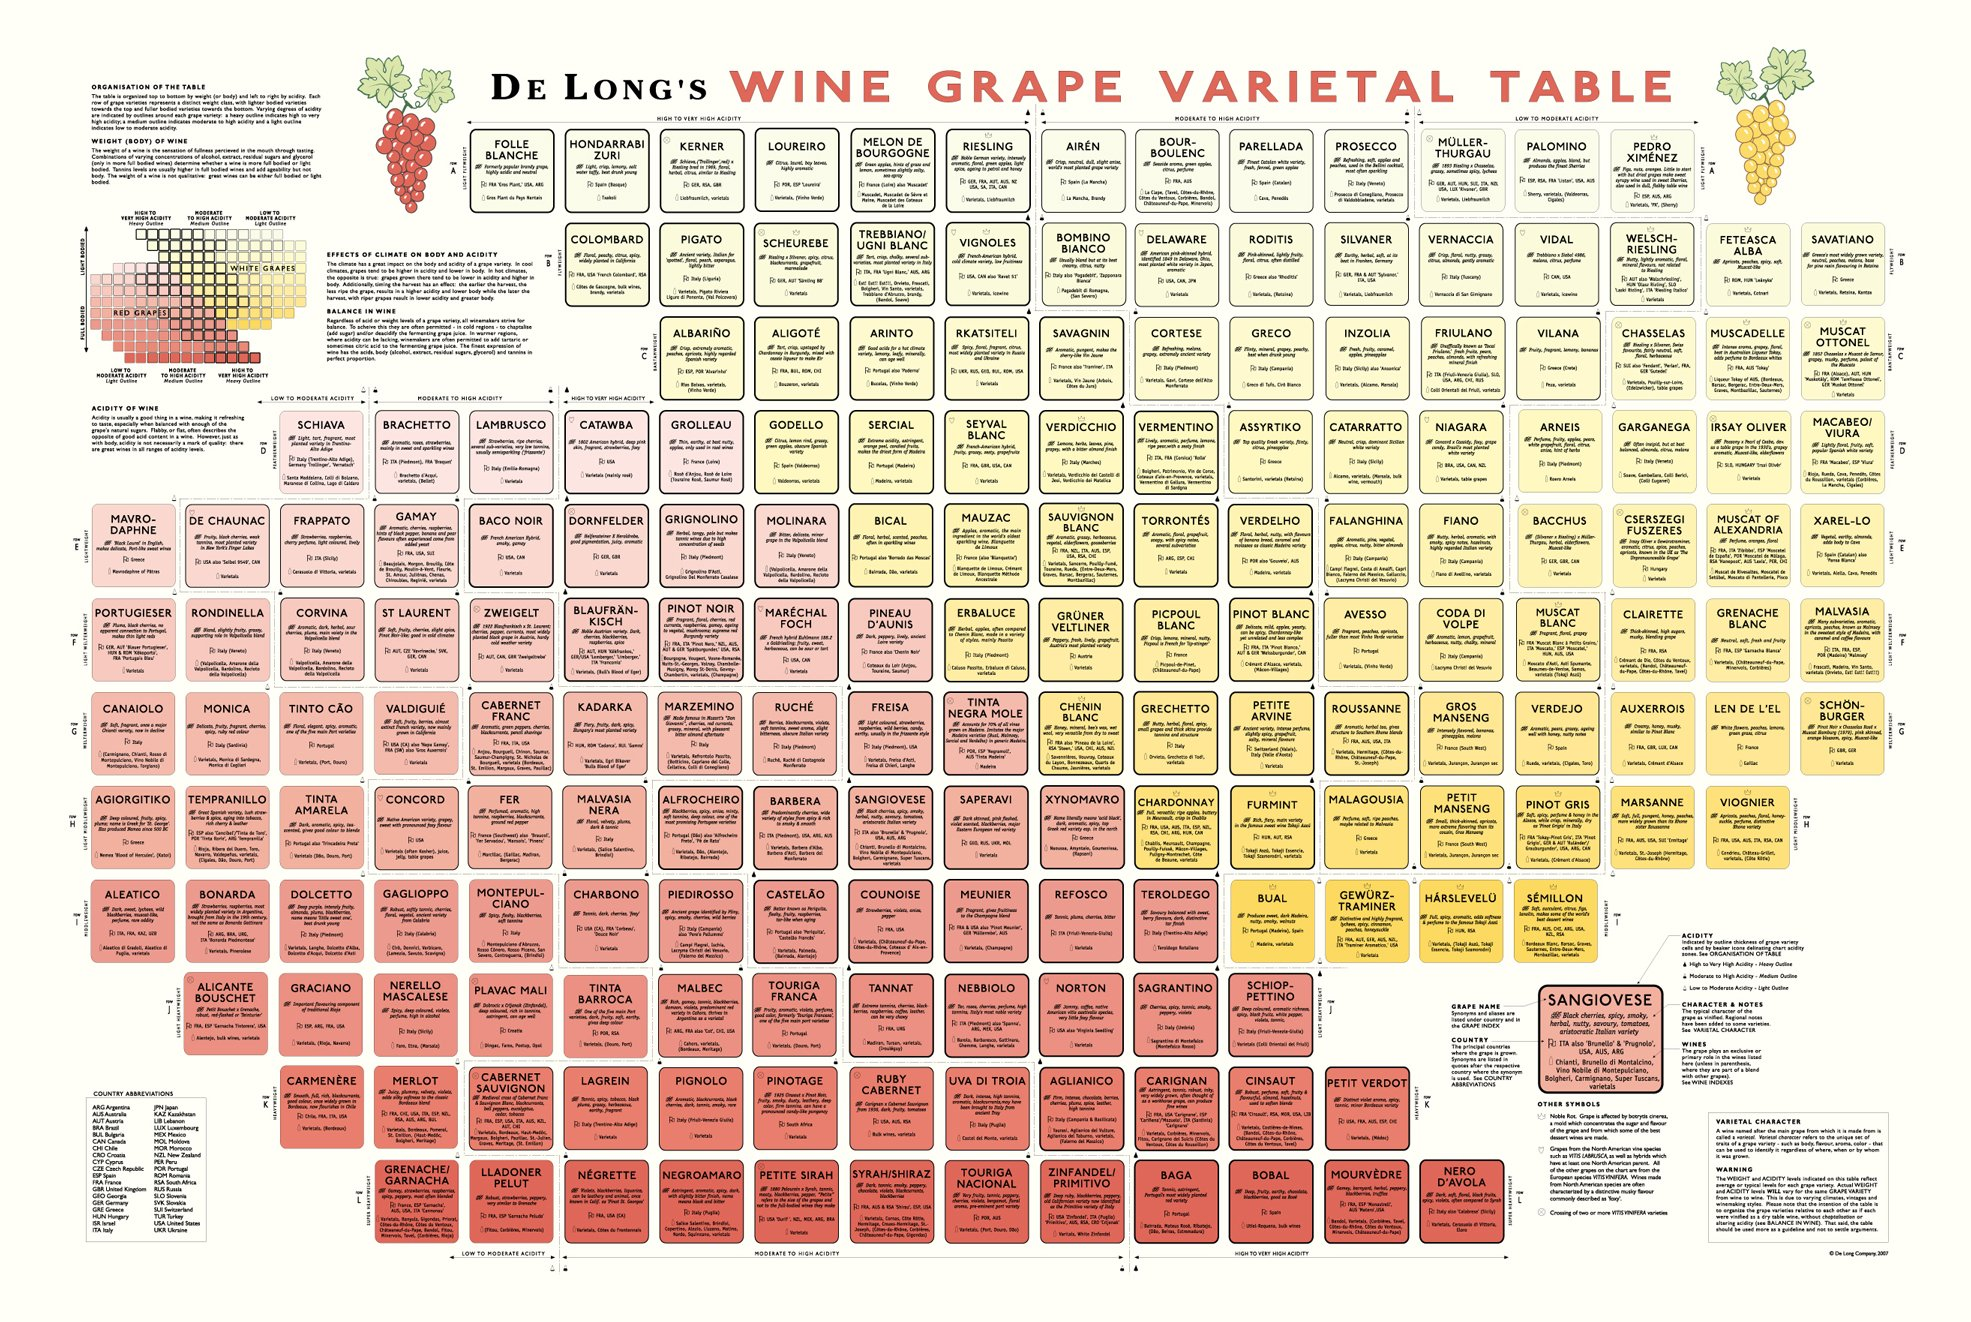 Image result for delong's wine grape varietal table